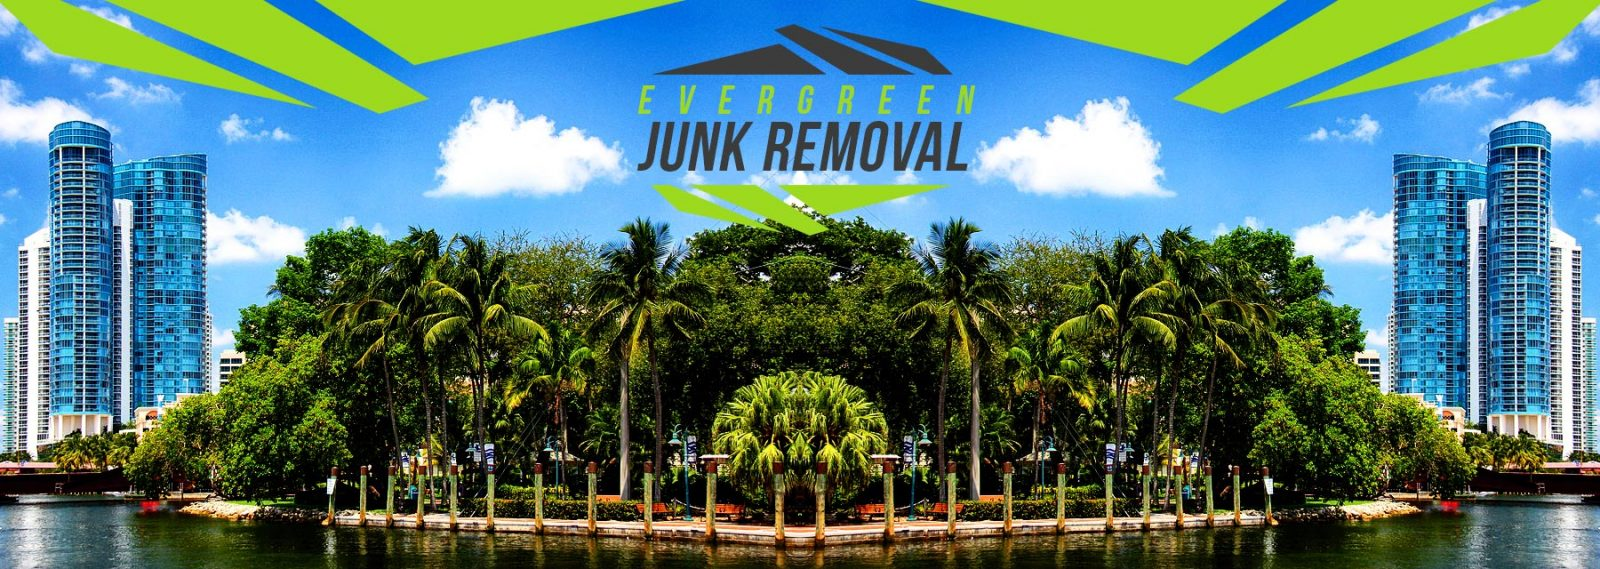 Hallandale Beach Hot Tub Removal Company